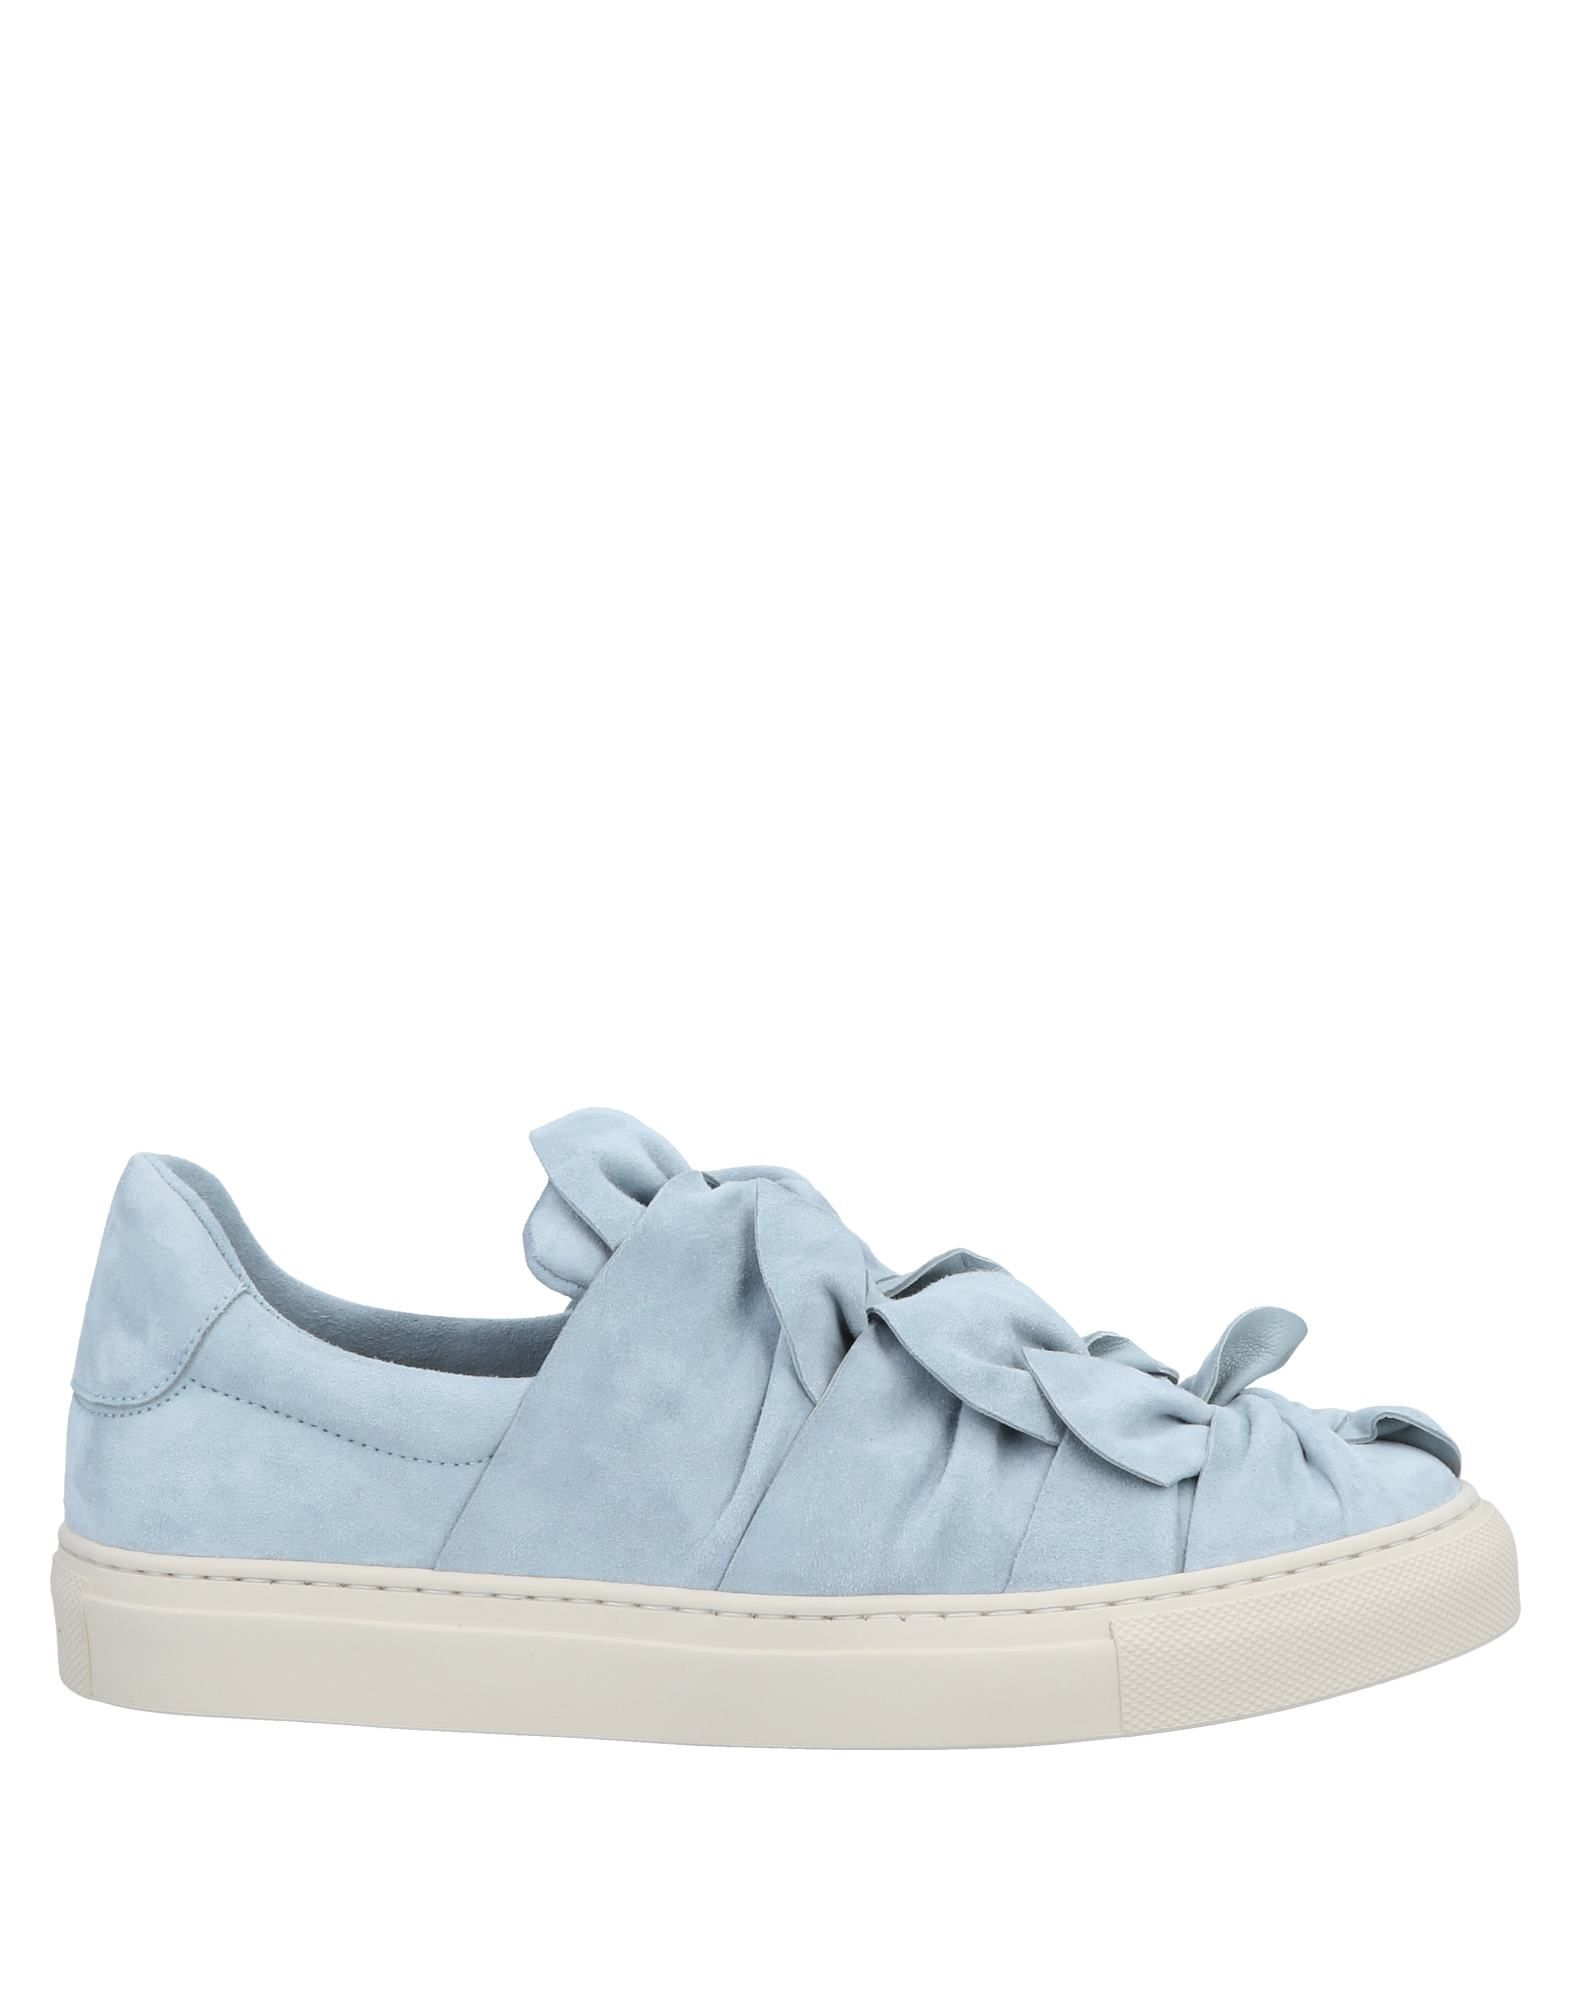 Ports 1961 1961 SNEAKERS